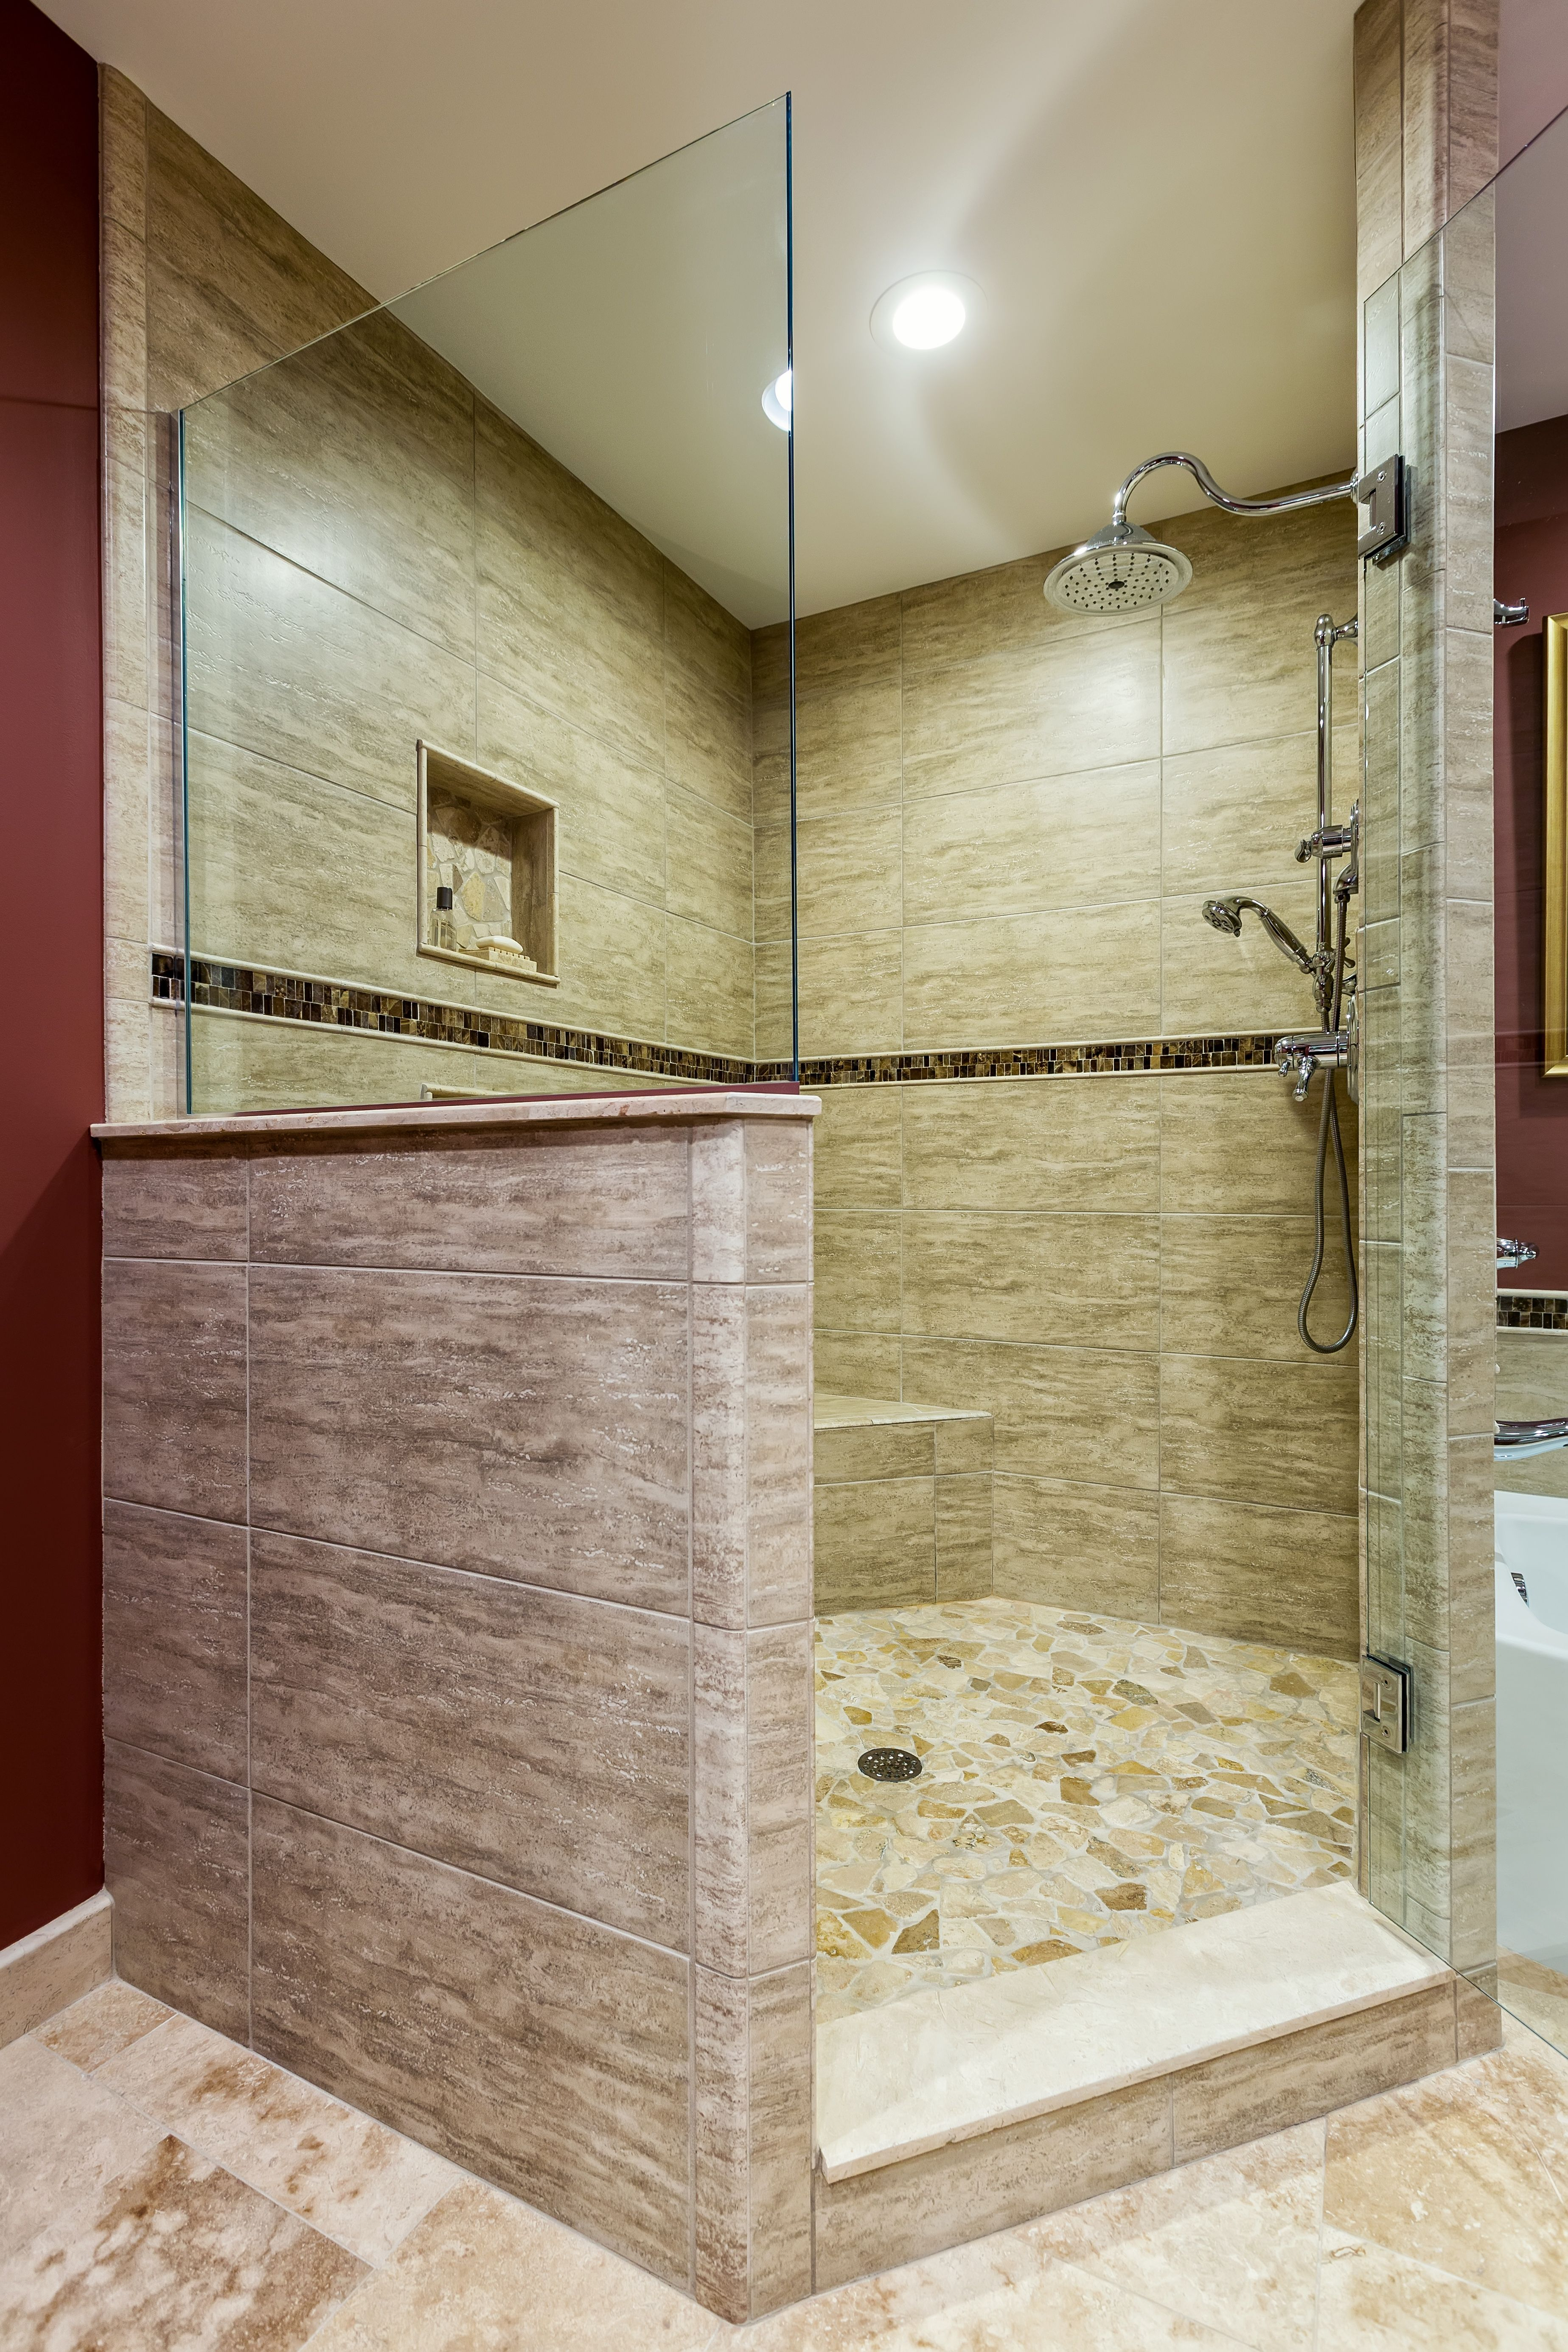 Romantic shower design - Travertine Cobblestone Floor On The Shower And Large Porcelain Tile On The Wall Create A Beautiful